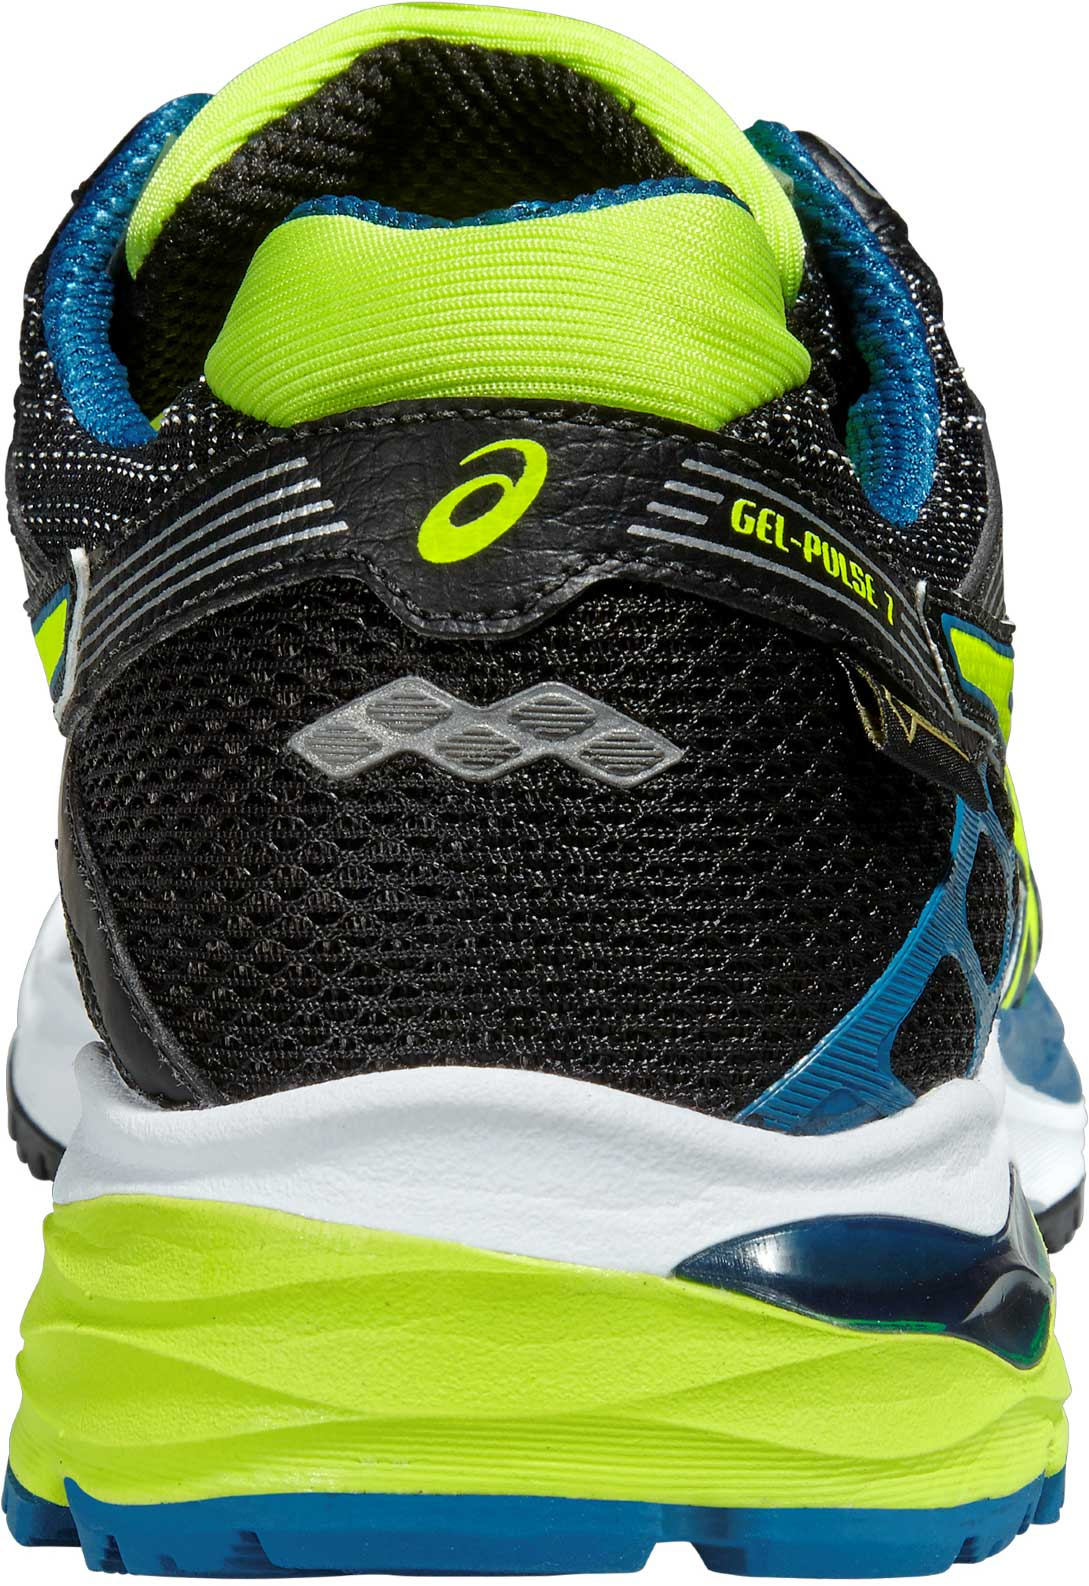 Asics GEL PULSE 7 GTX | sportisimo.cz